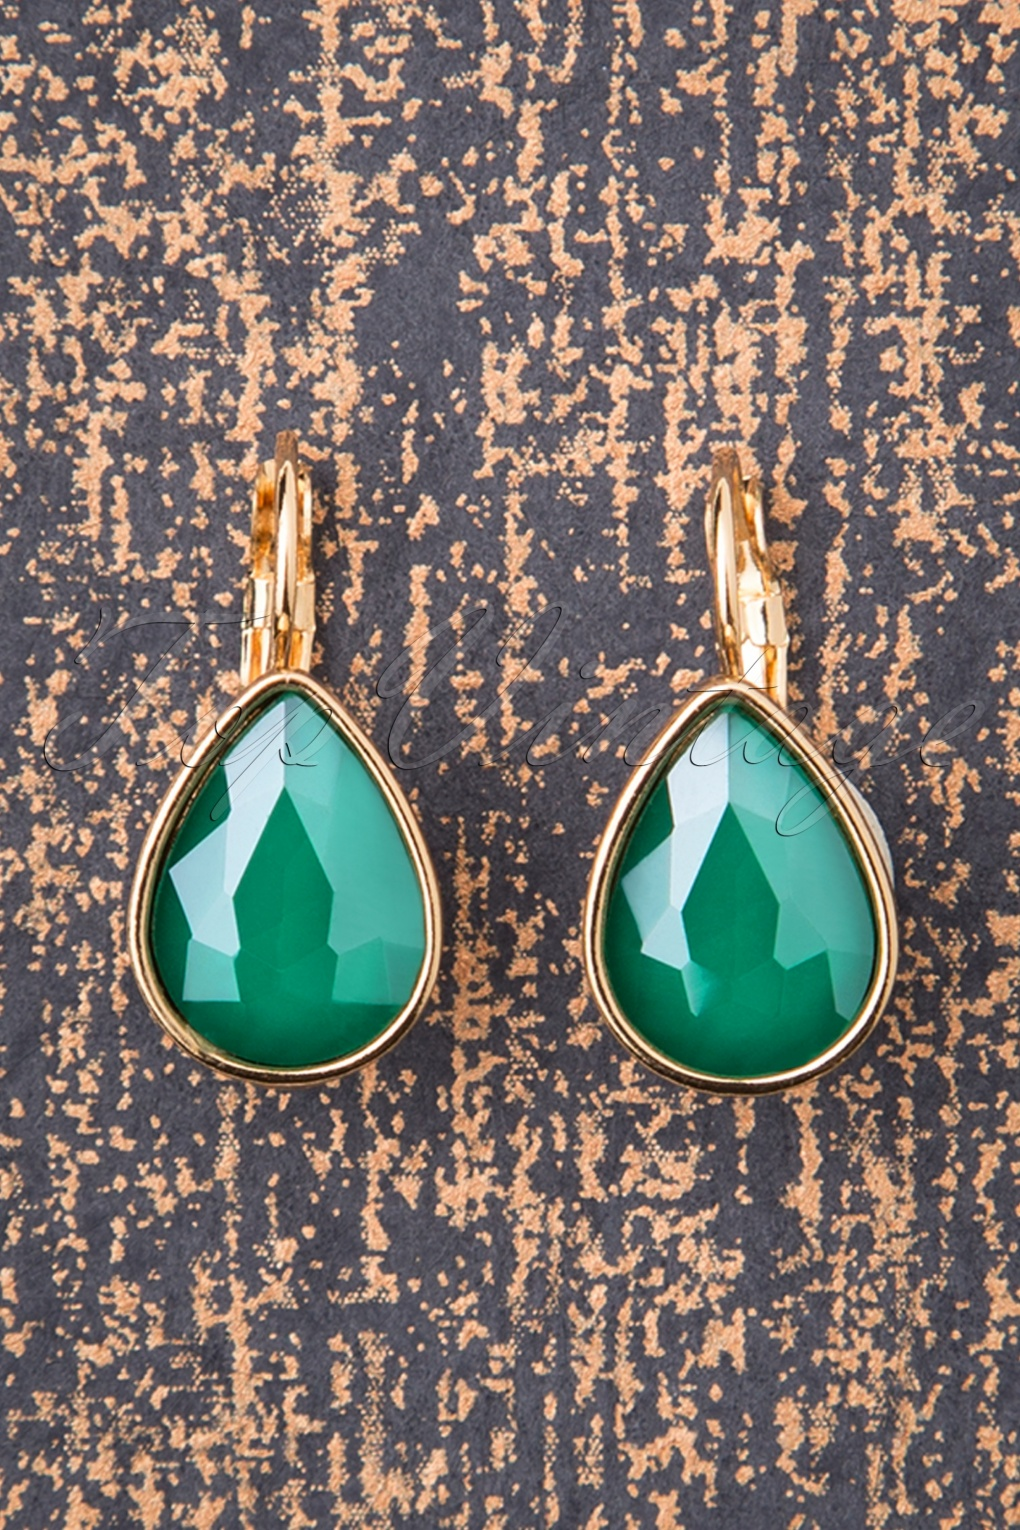 Vintage Style Jewelry, Retro Jewelry 50s Darlene Diamond Drop Earrings in Sea Green £8.84 AT vintagedancer.com